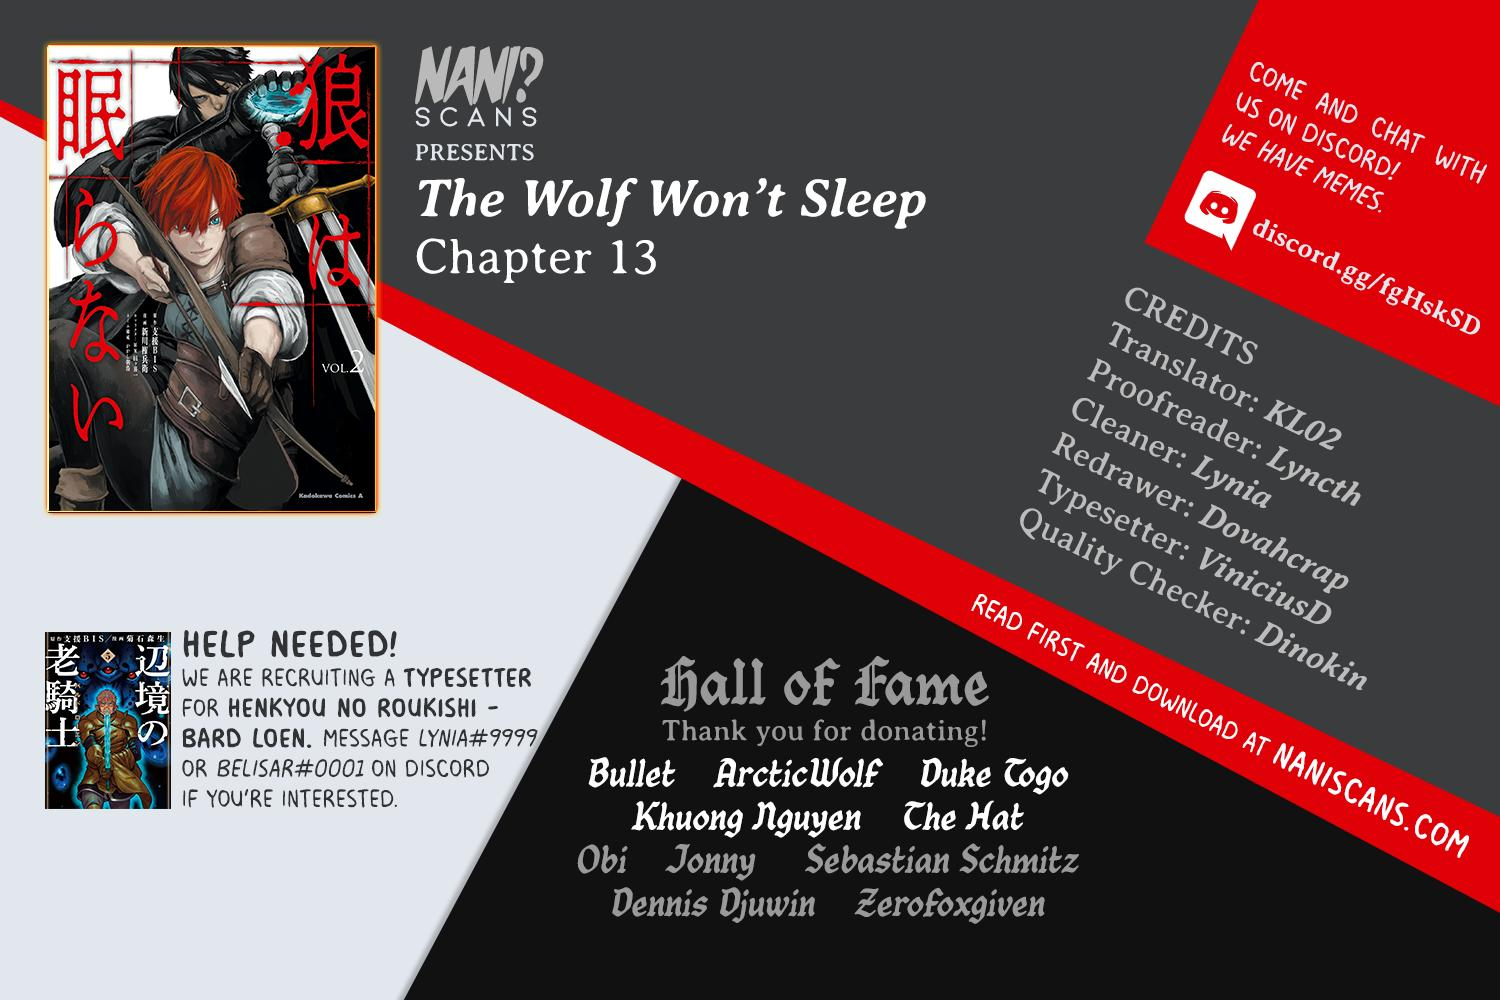 The Wolf Won't Sleep Chapter 13